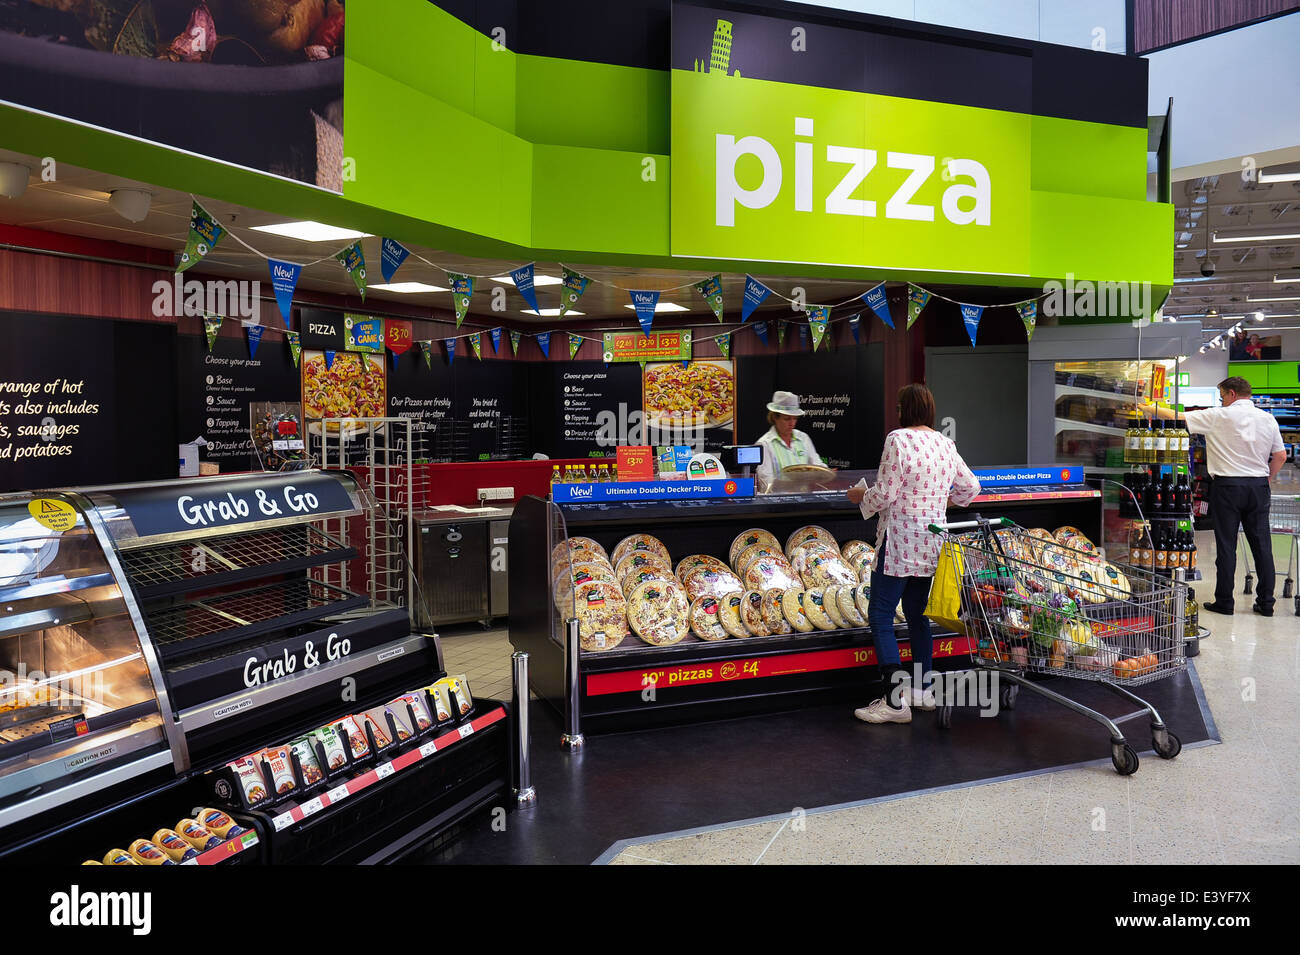 Shopper At Pizza Section Asda Supermarket Interior 2014